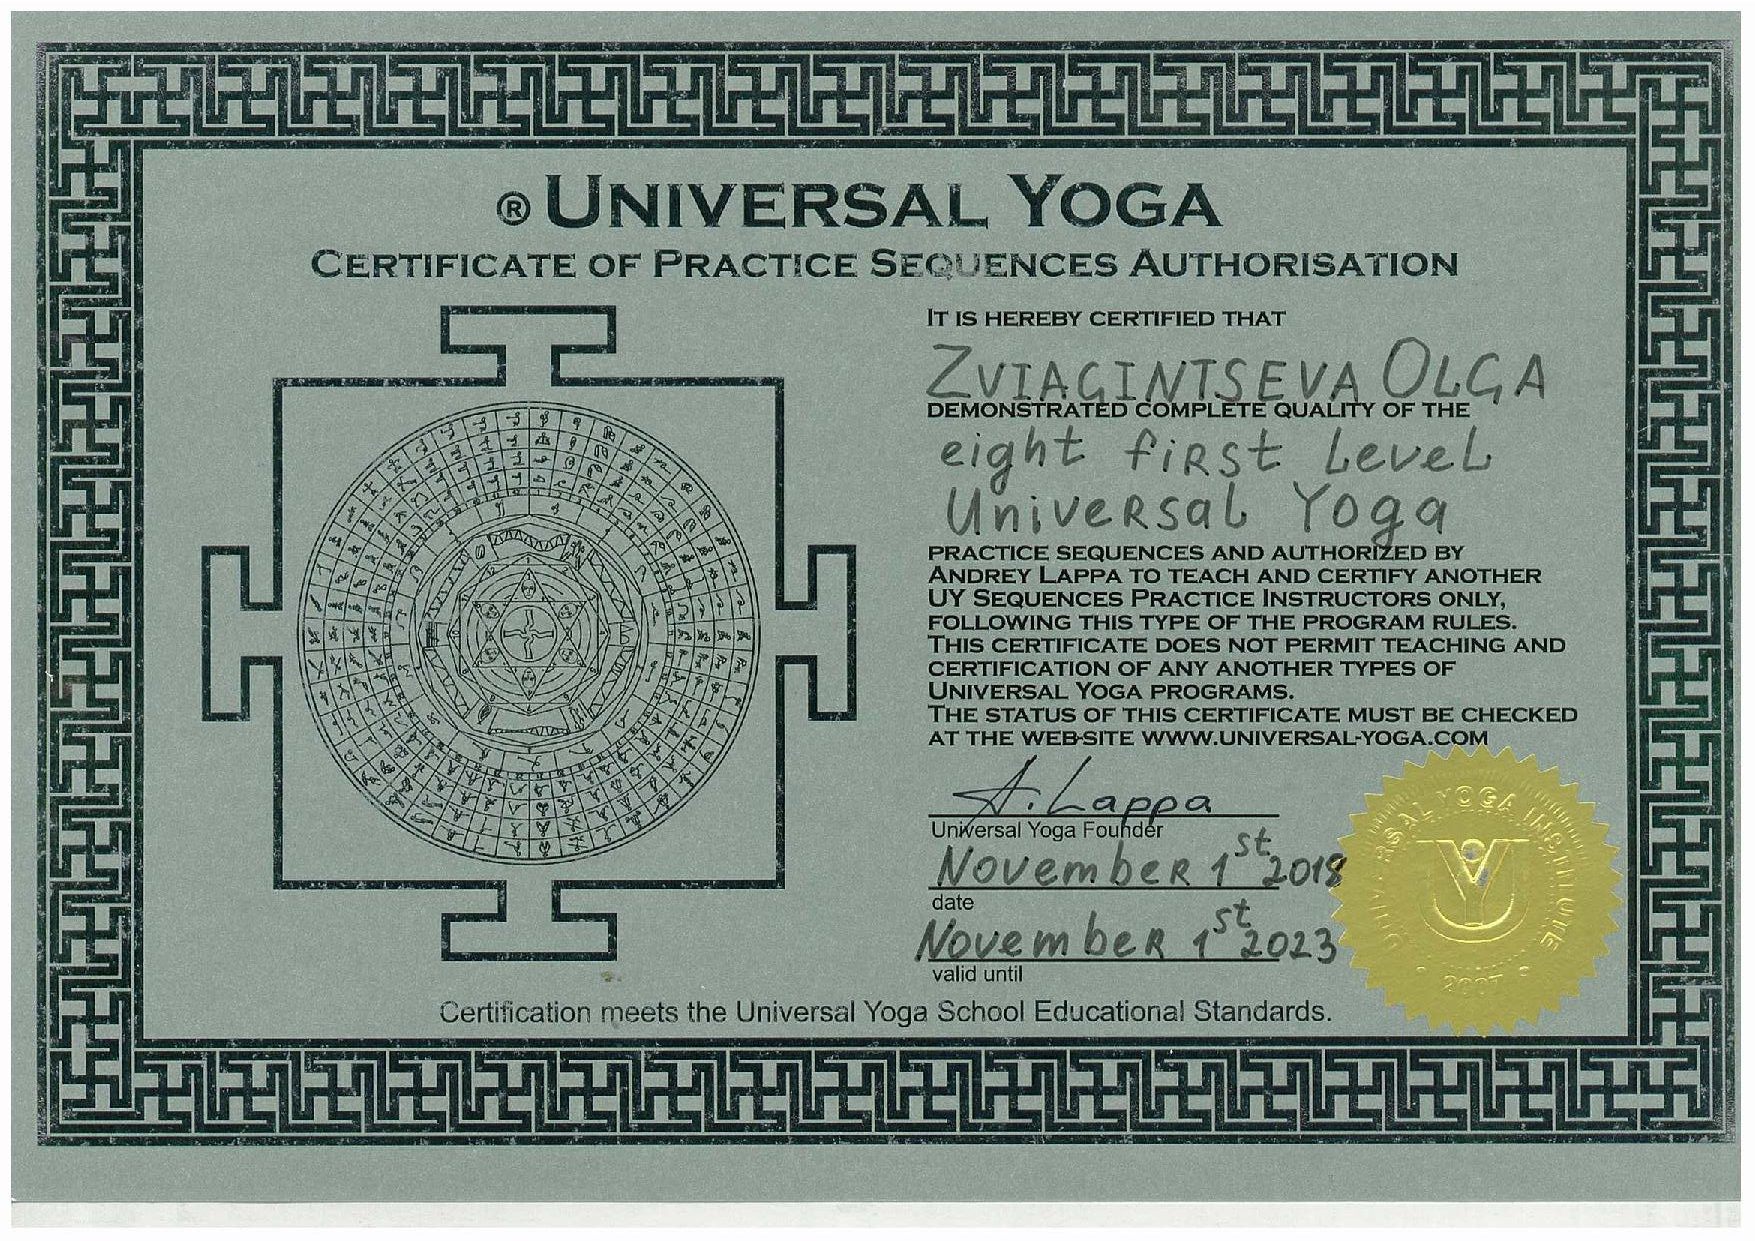 Authorization Certificate of Universal Yoga